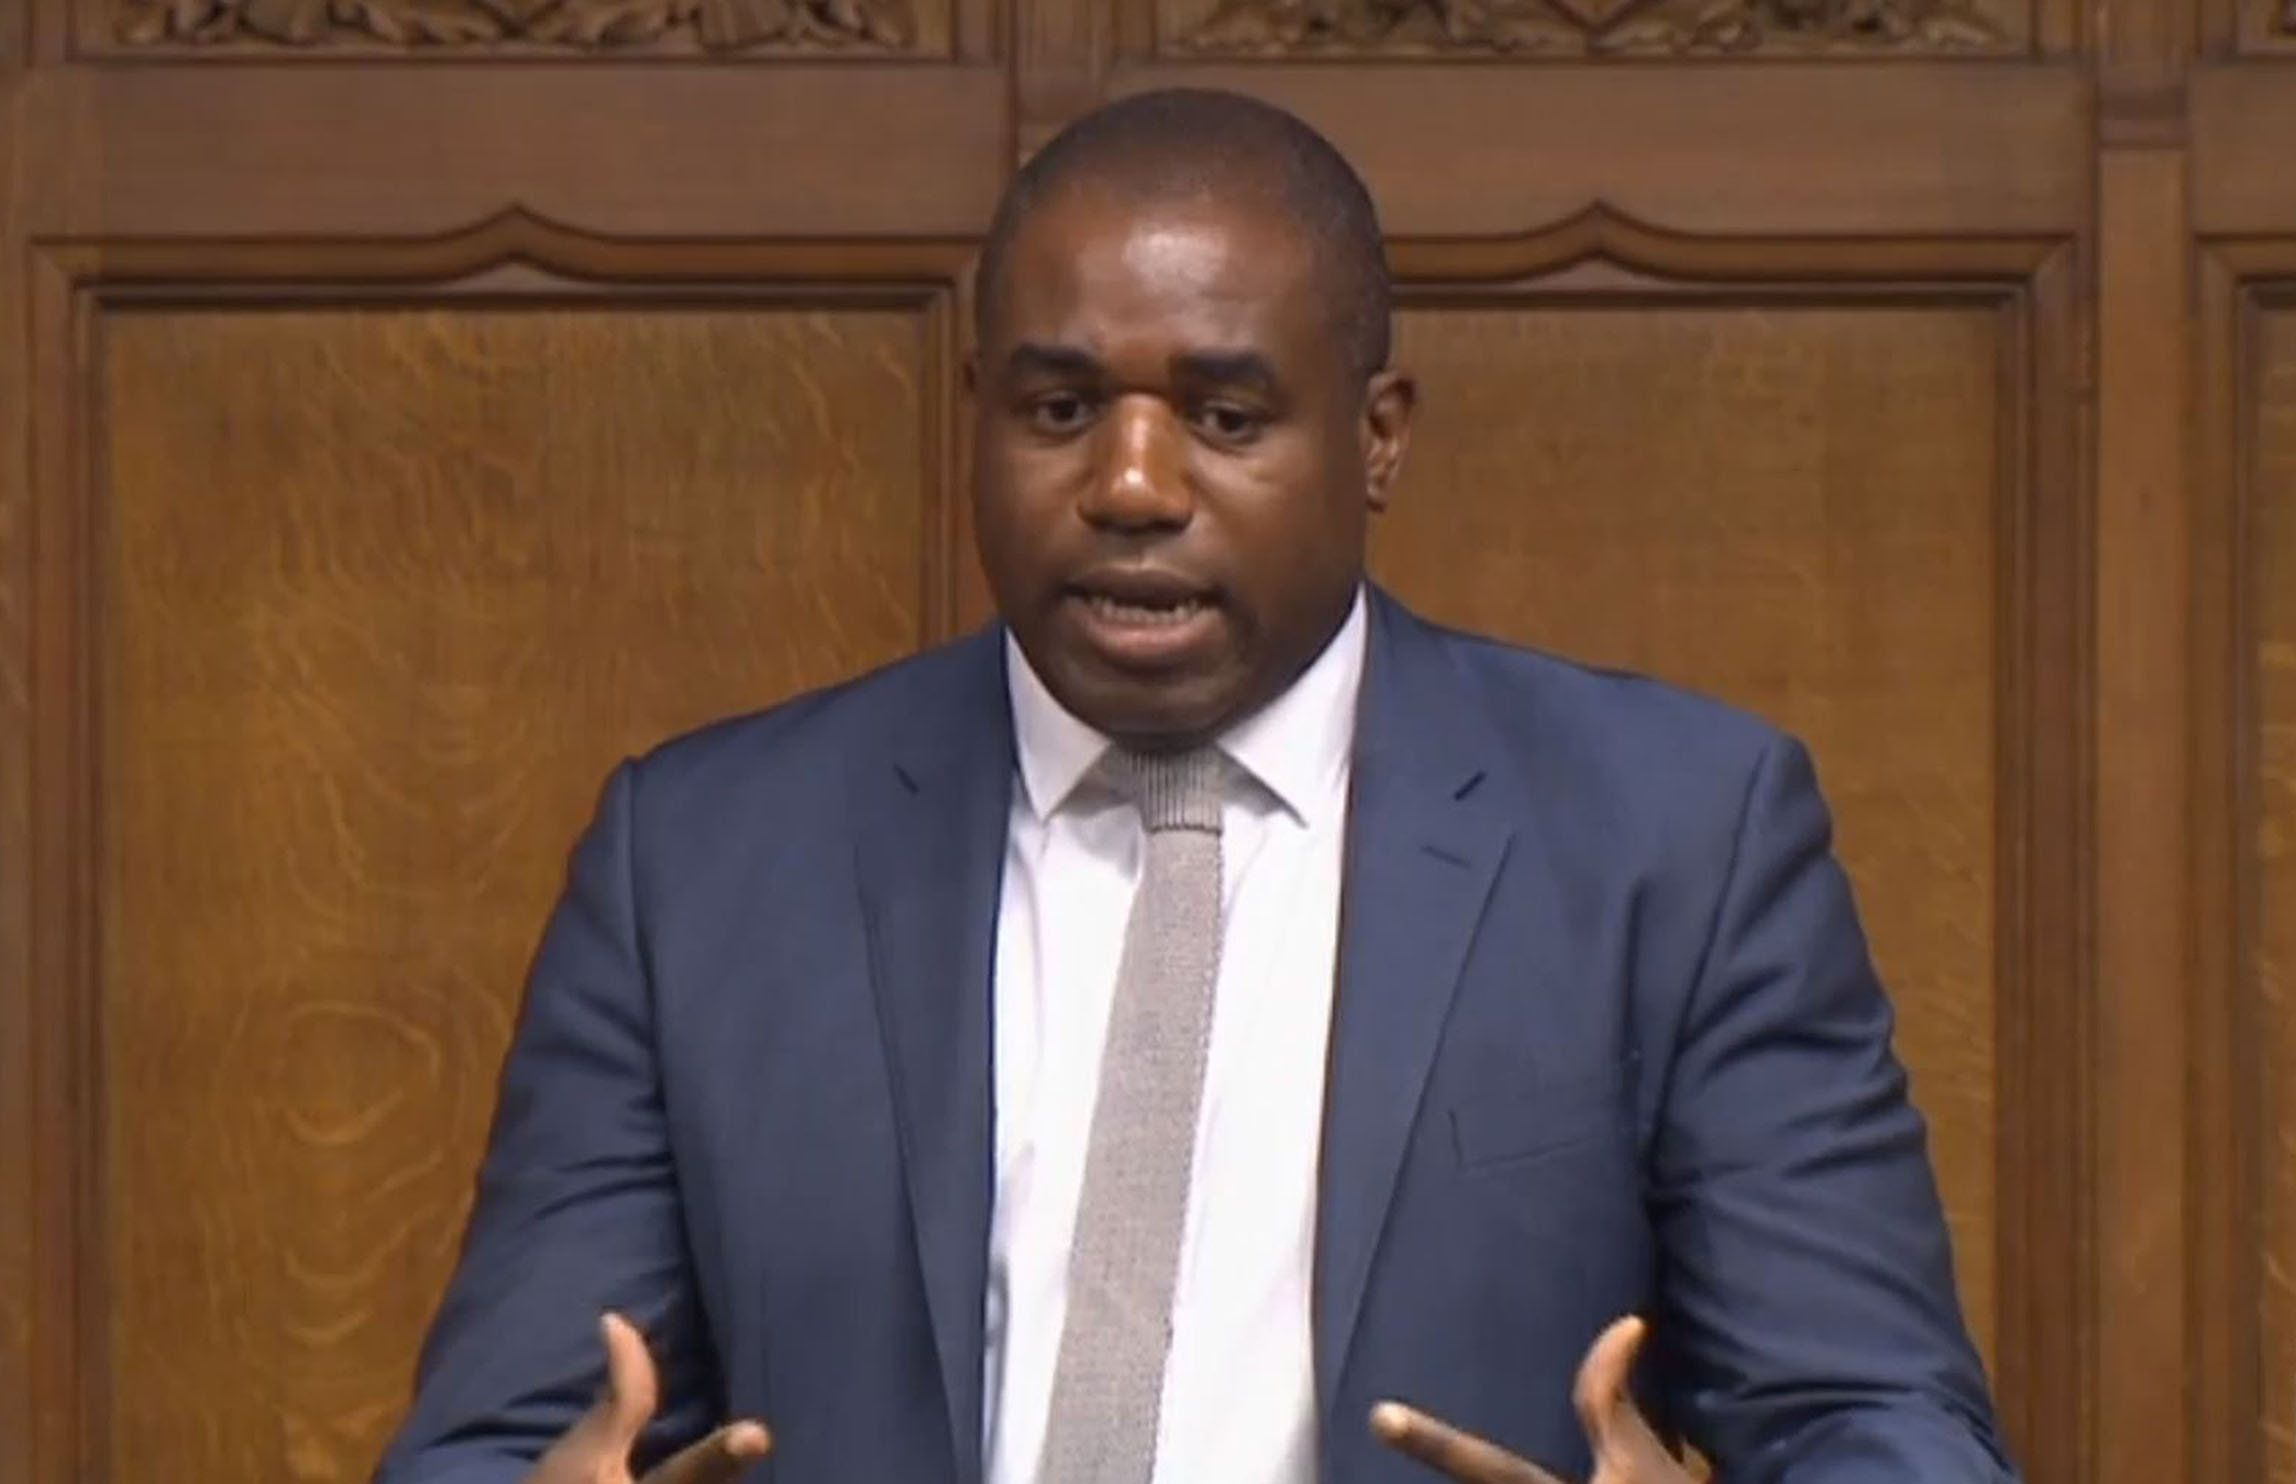 David Lammy said the inquiry seemed 'distant and unresponsive' to survivors and the bereaved